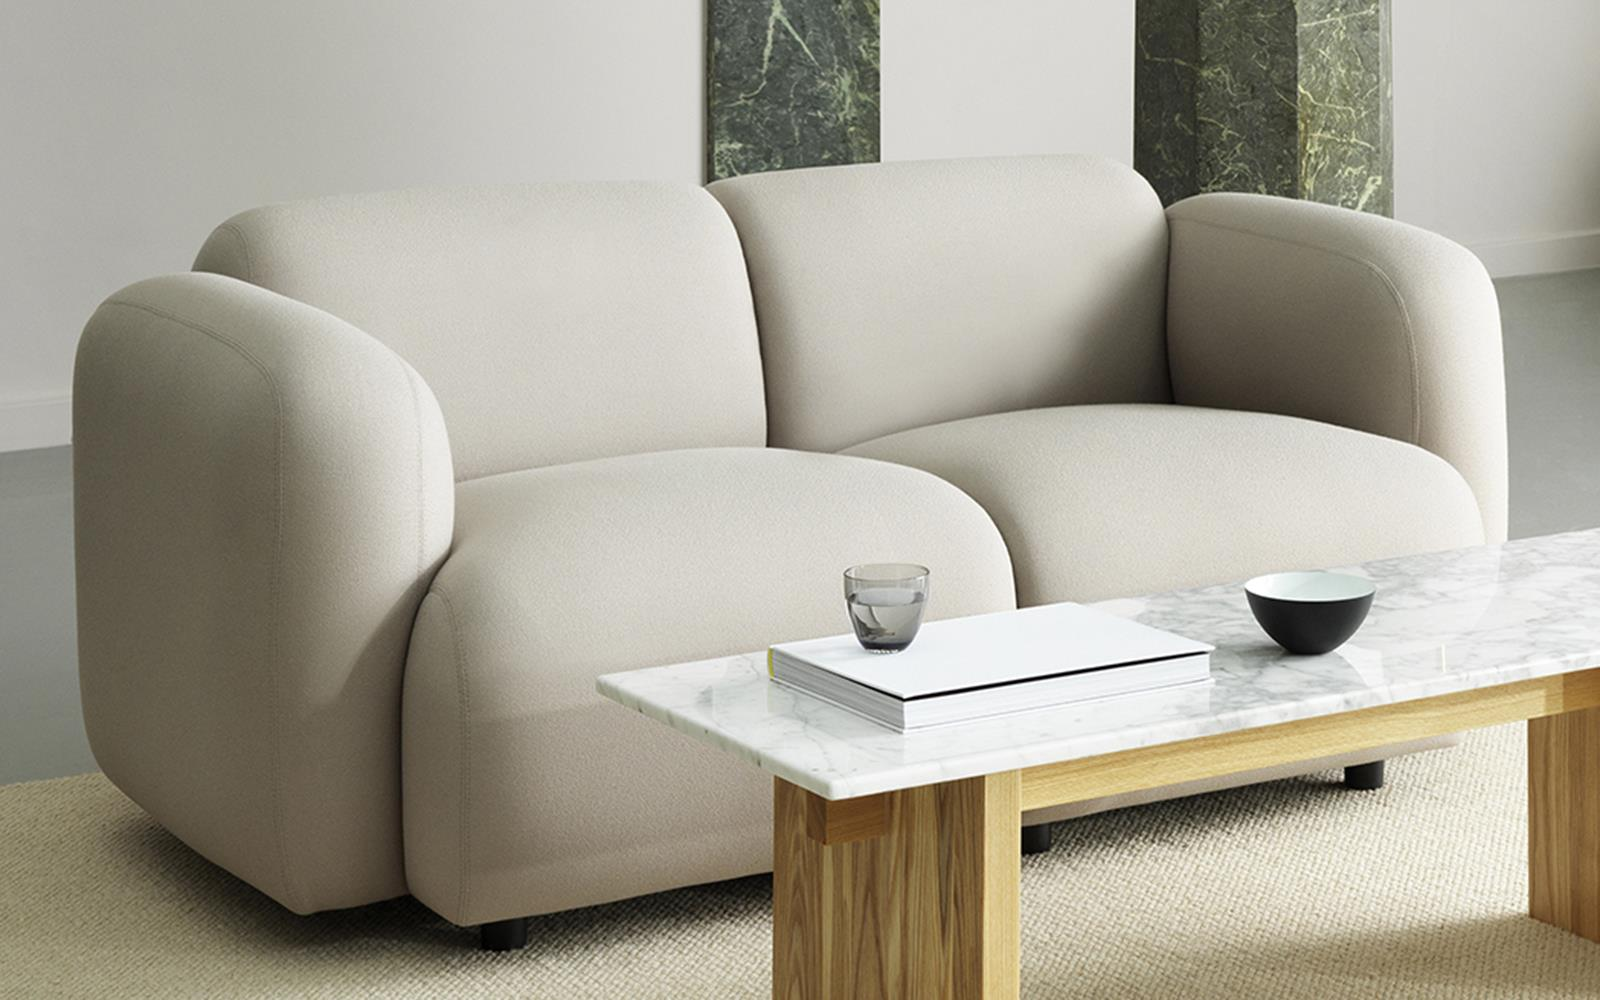 Swell Sofa 2 Seater4